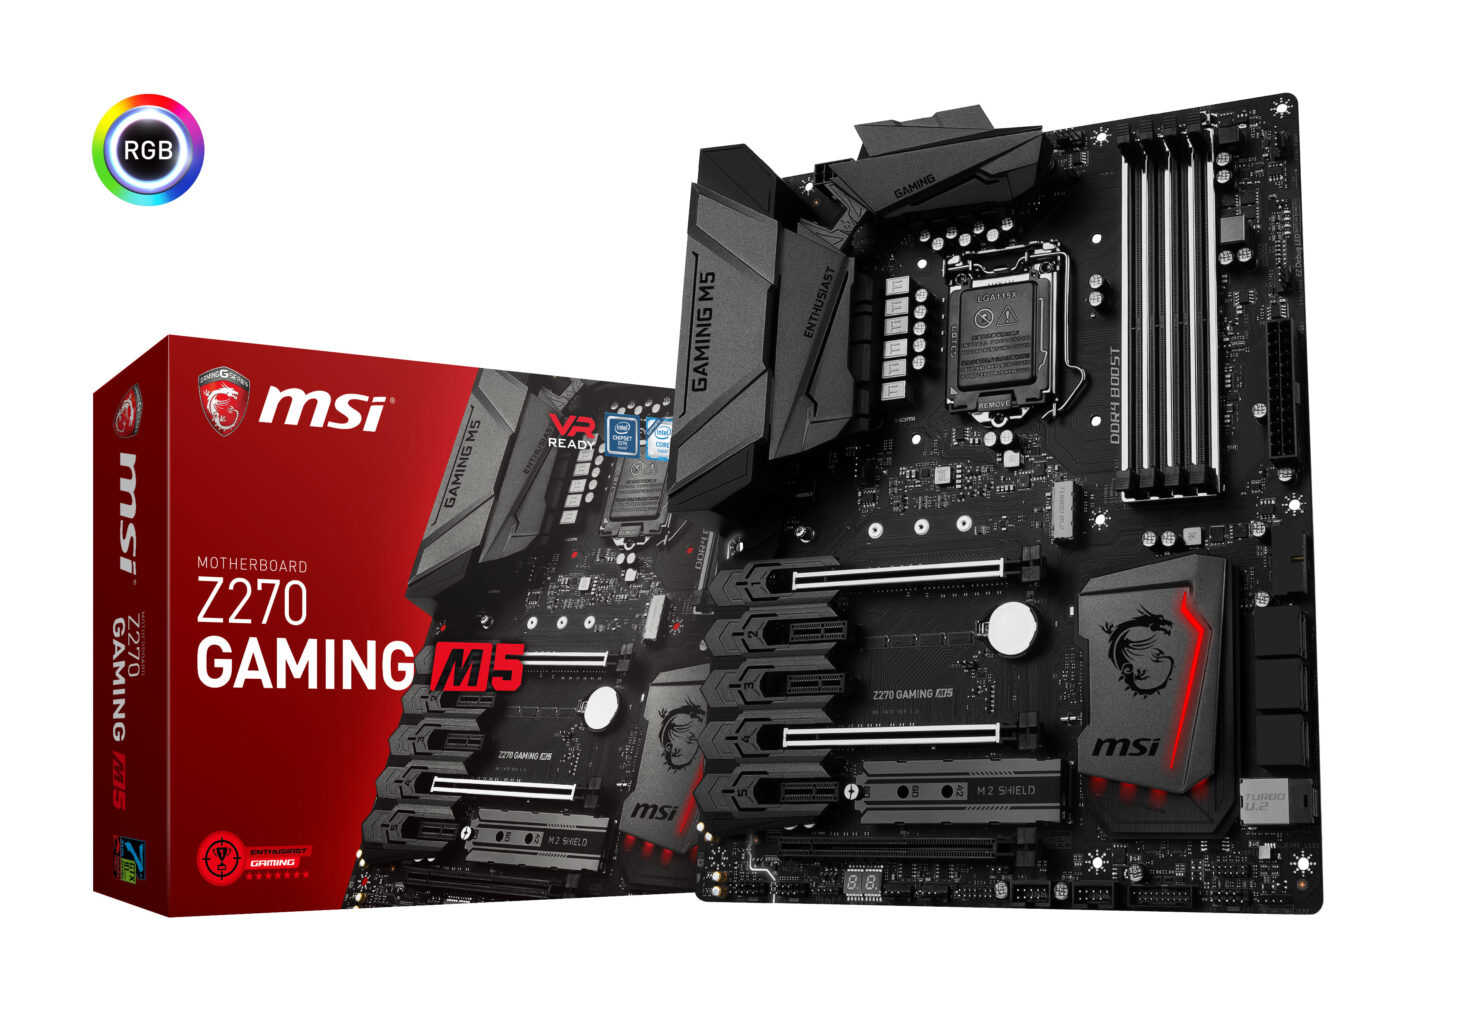 msi-z270_gaming_m5-product_pictures-box